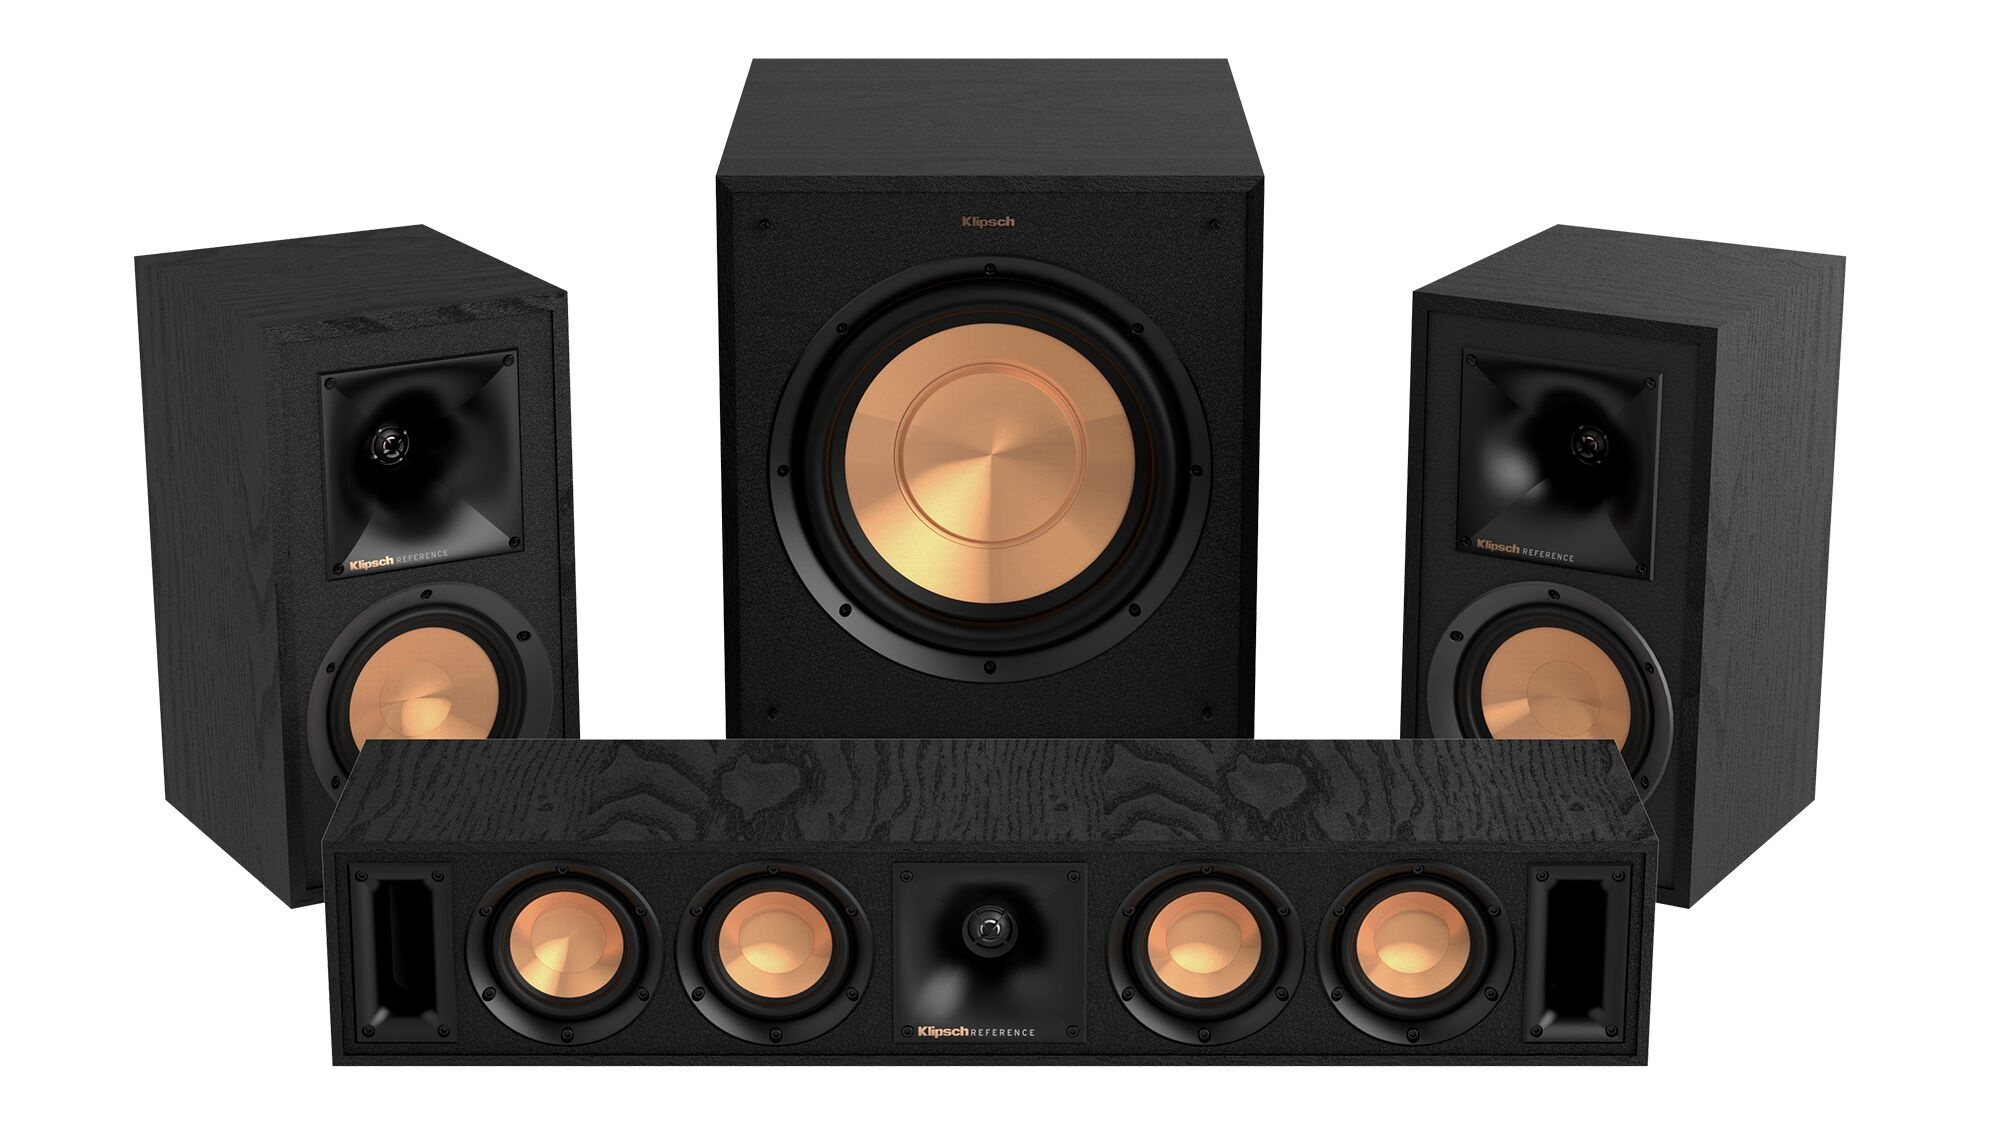 Klipsch Reference Wireless speaker system